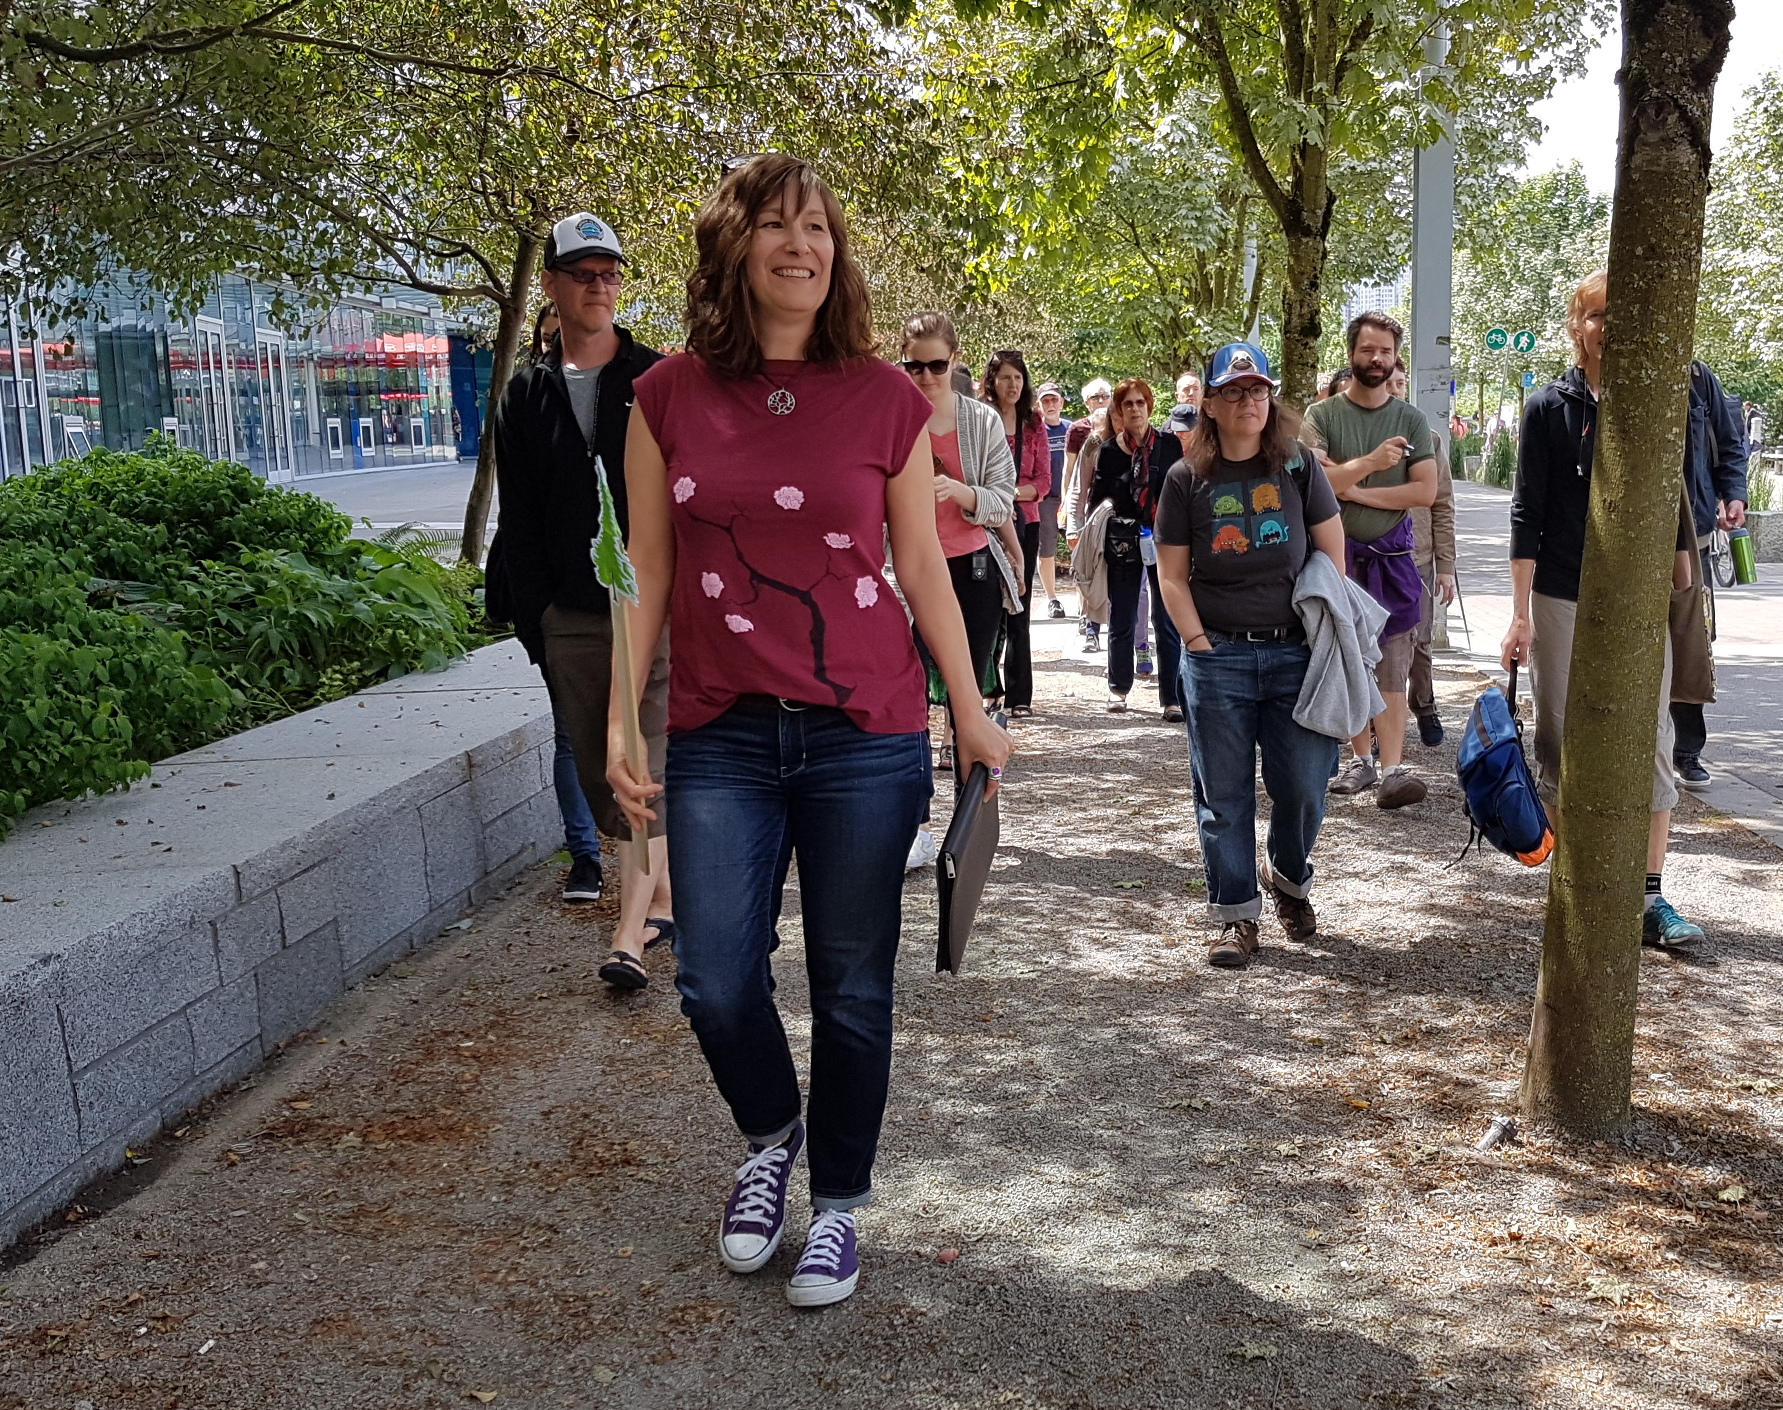 Walking Tour of Olympic Village in South East False Creek